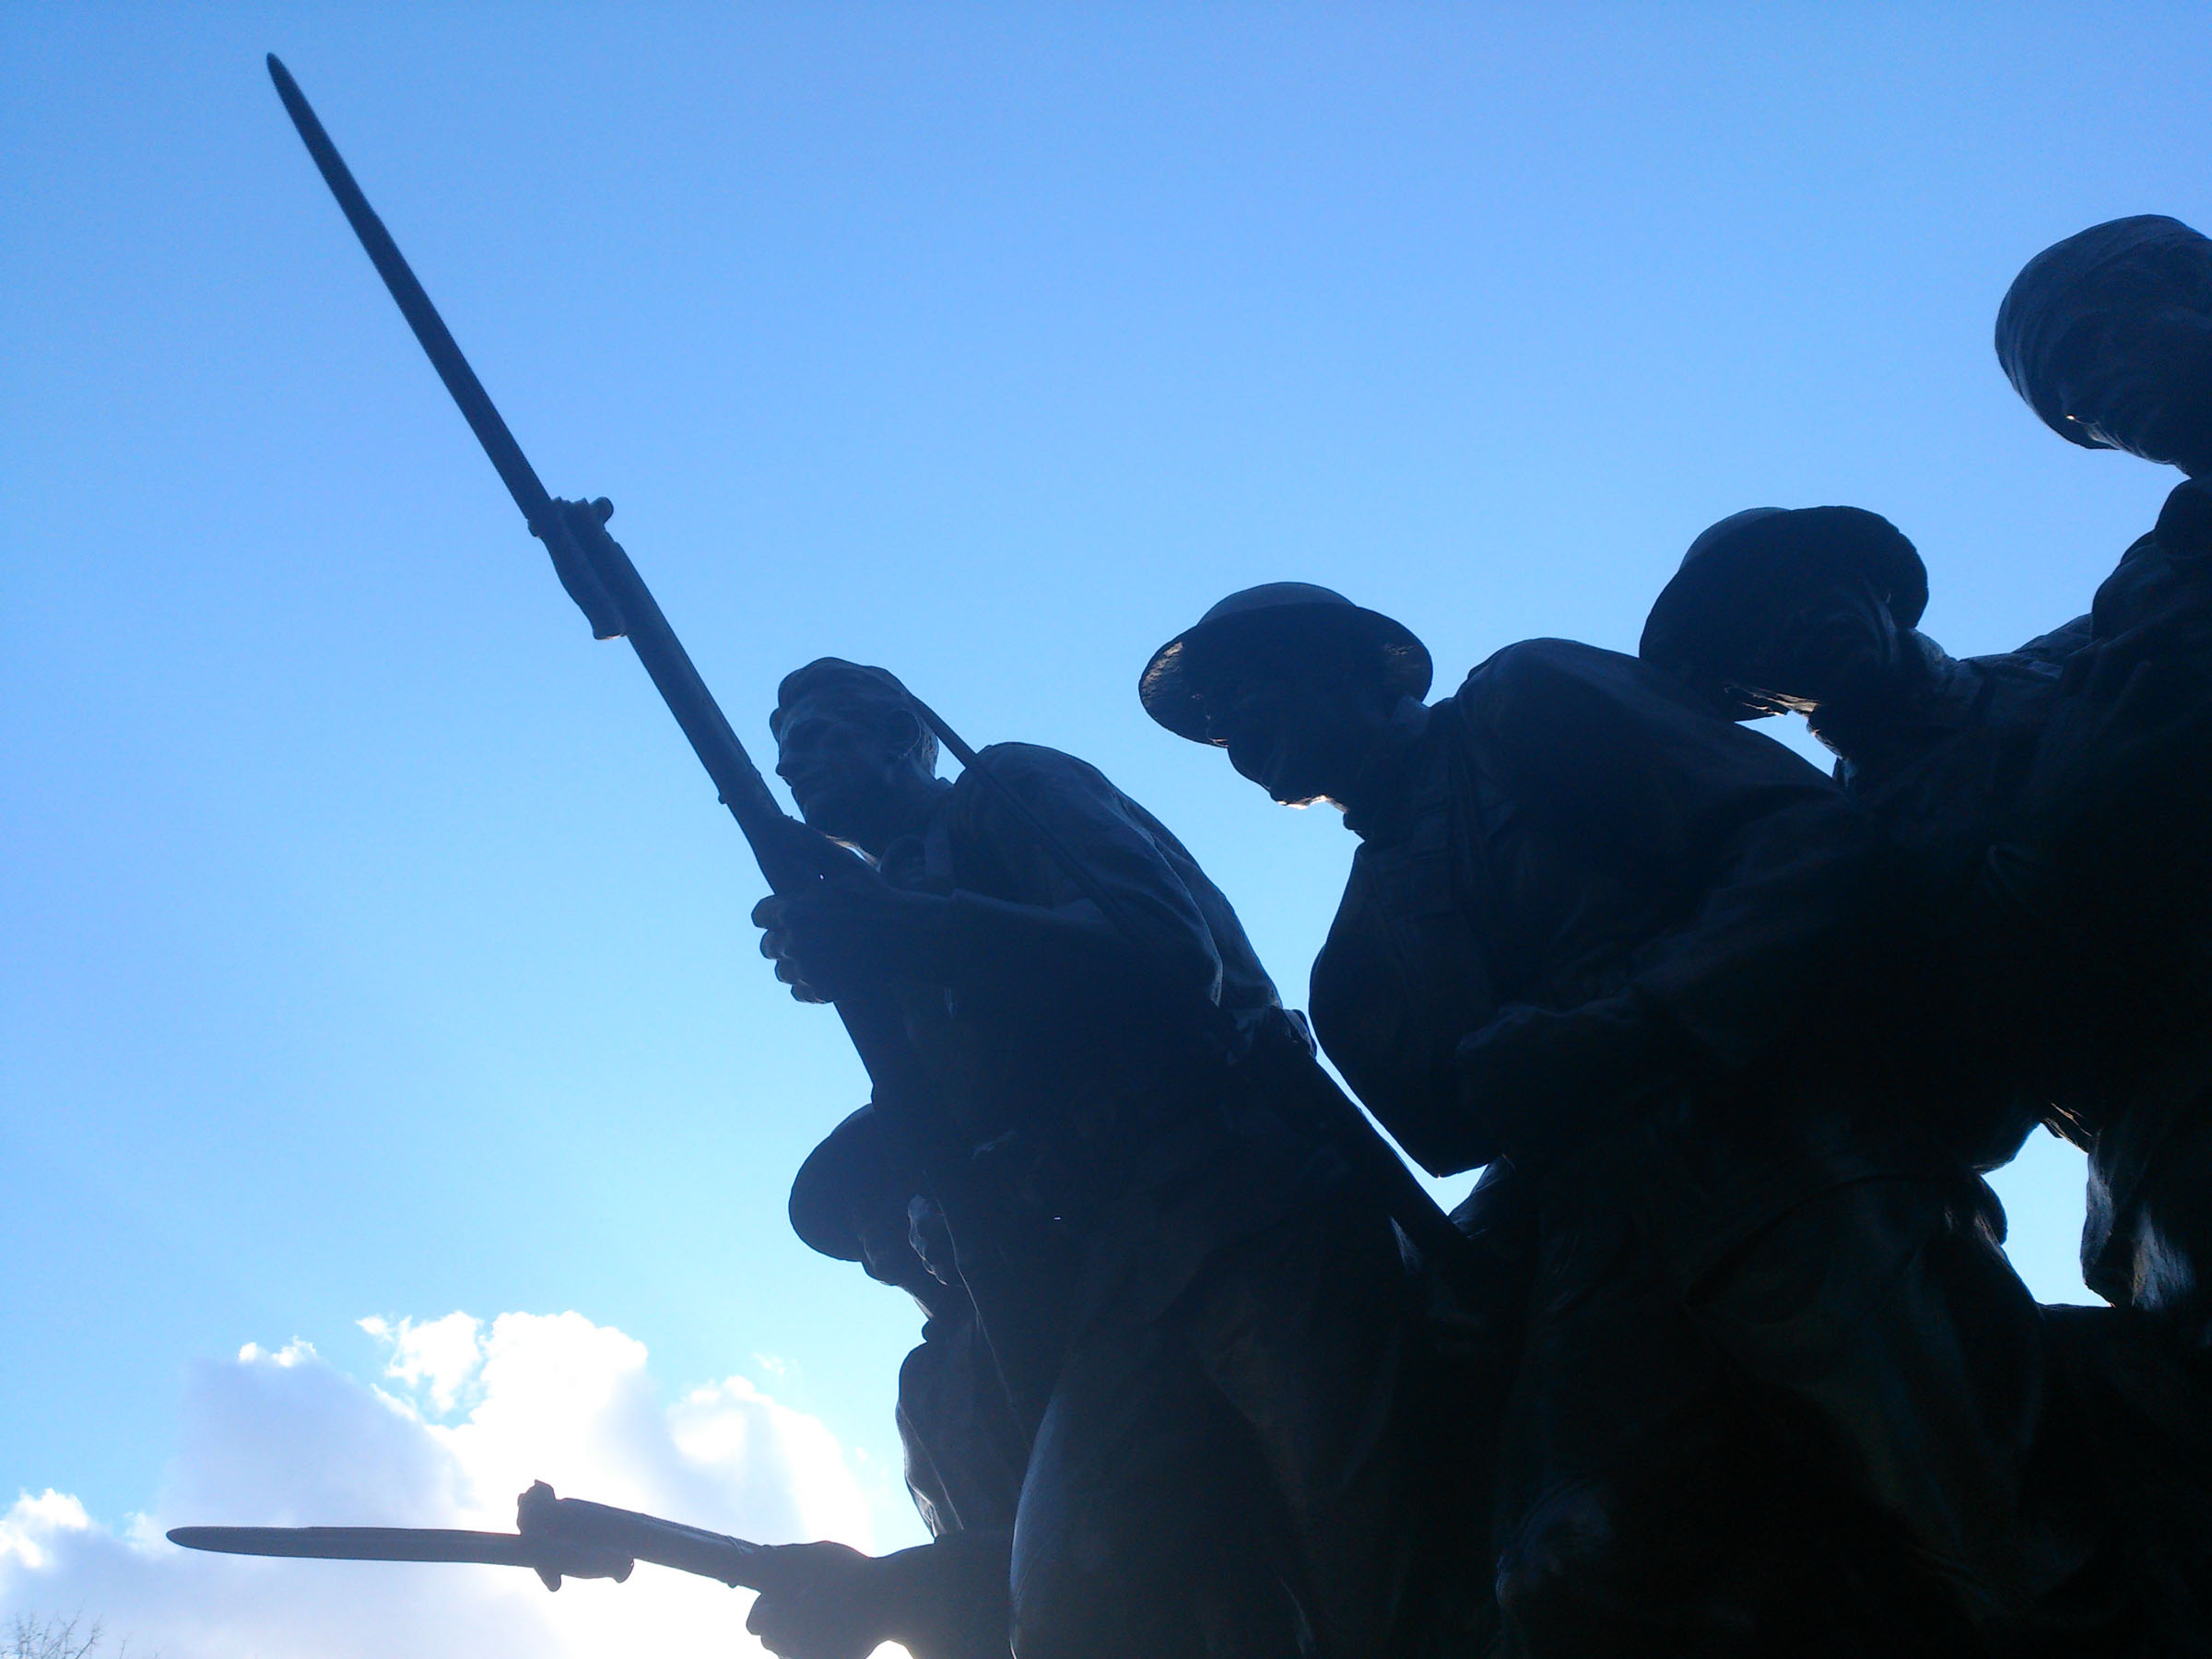 107th Regiment Memorial